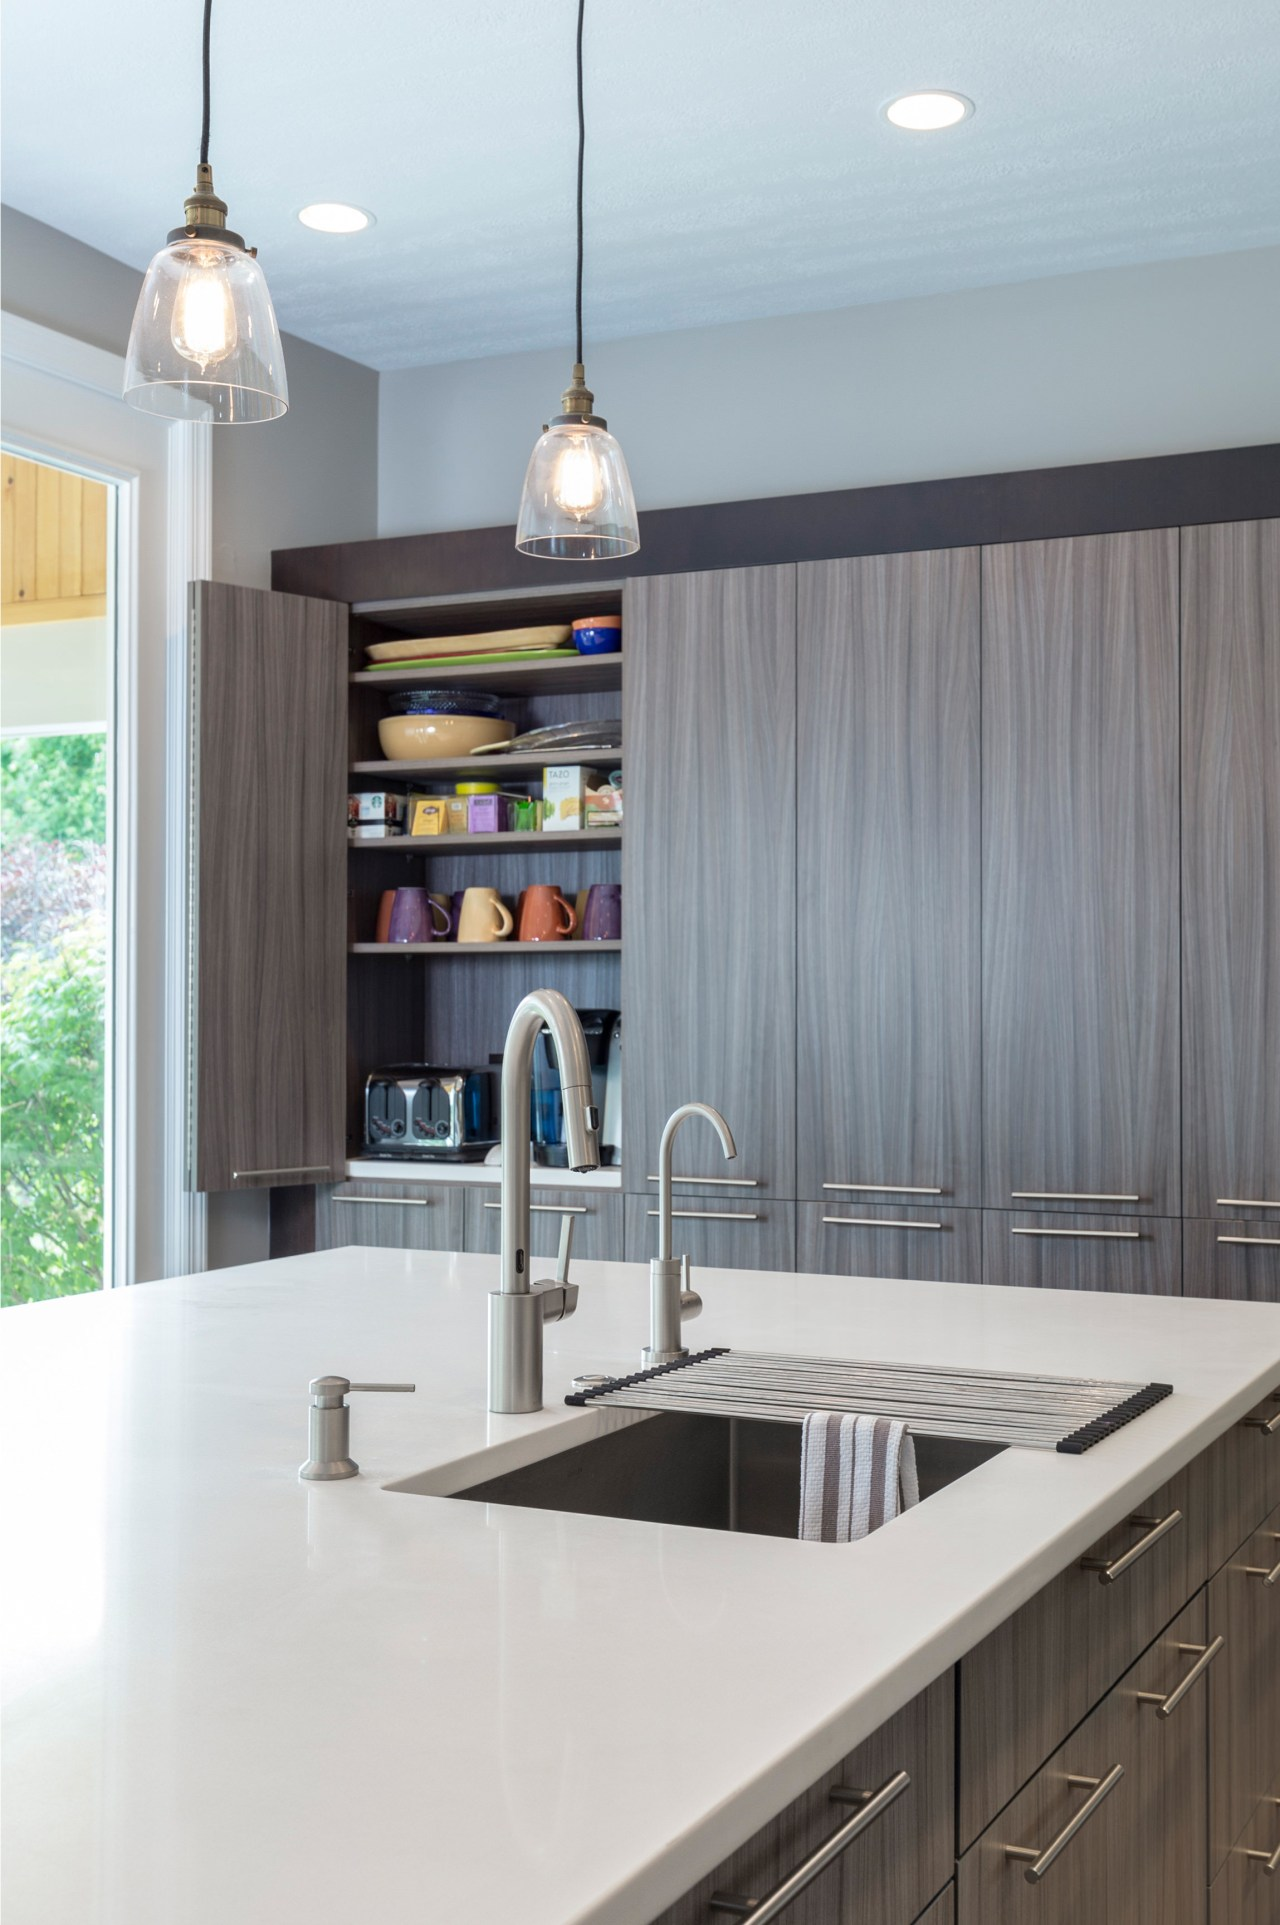 This kitchen by Lauren Levant Interior has an cabinetry, countertop, interior design, kitchen, gray